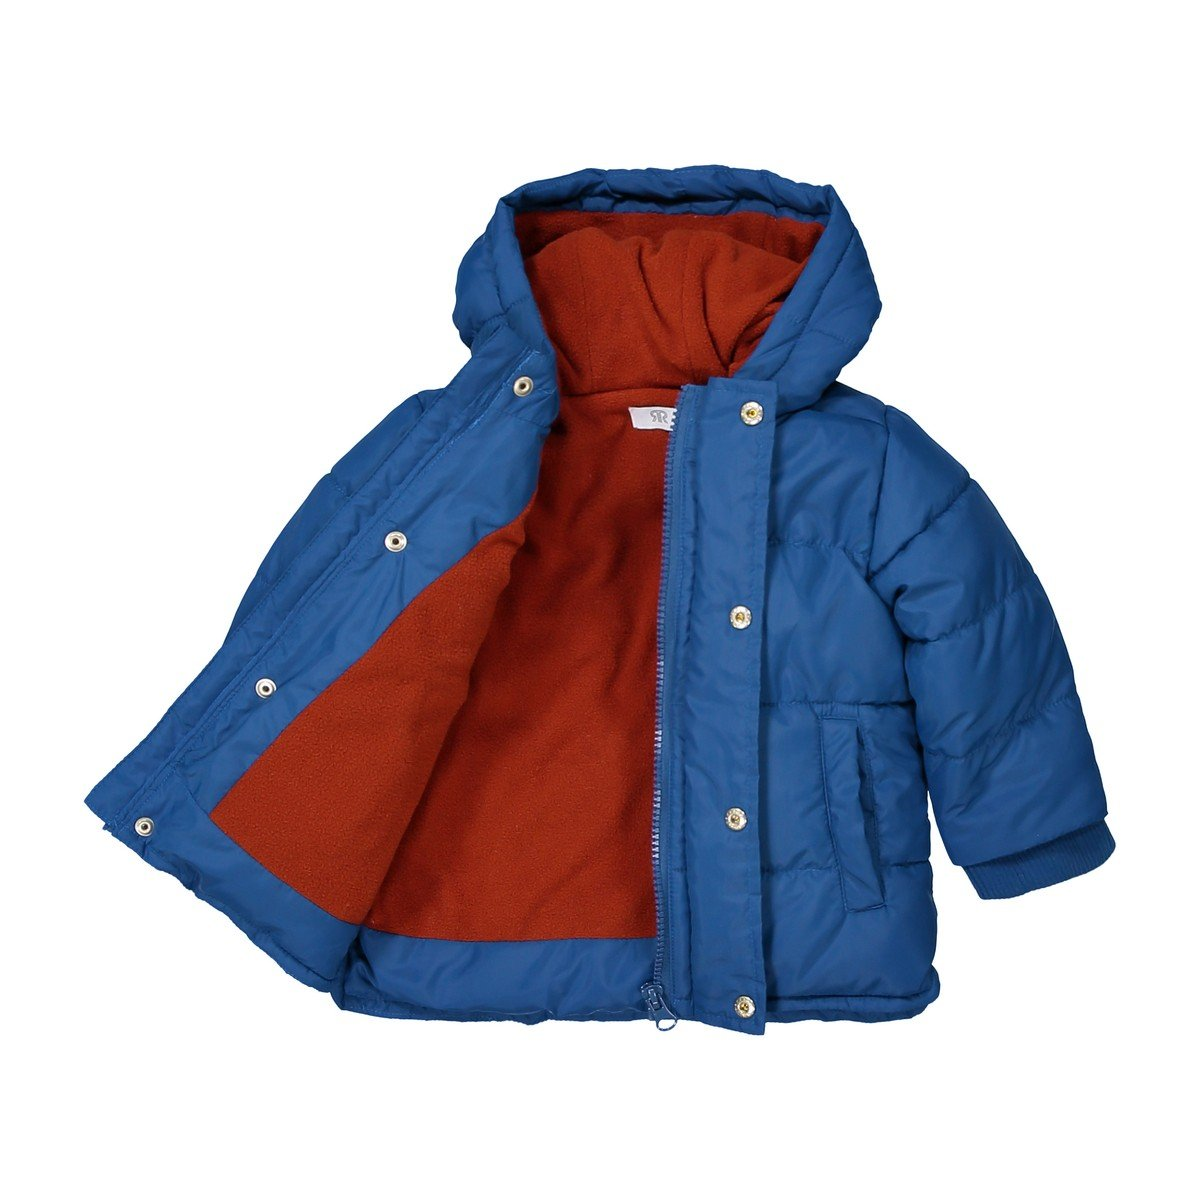 La Redoute Collections Big Boys Hooded Padded Jacket 3 Months-3 Years